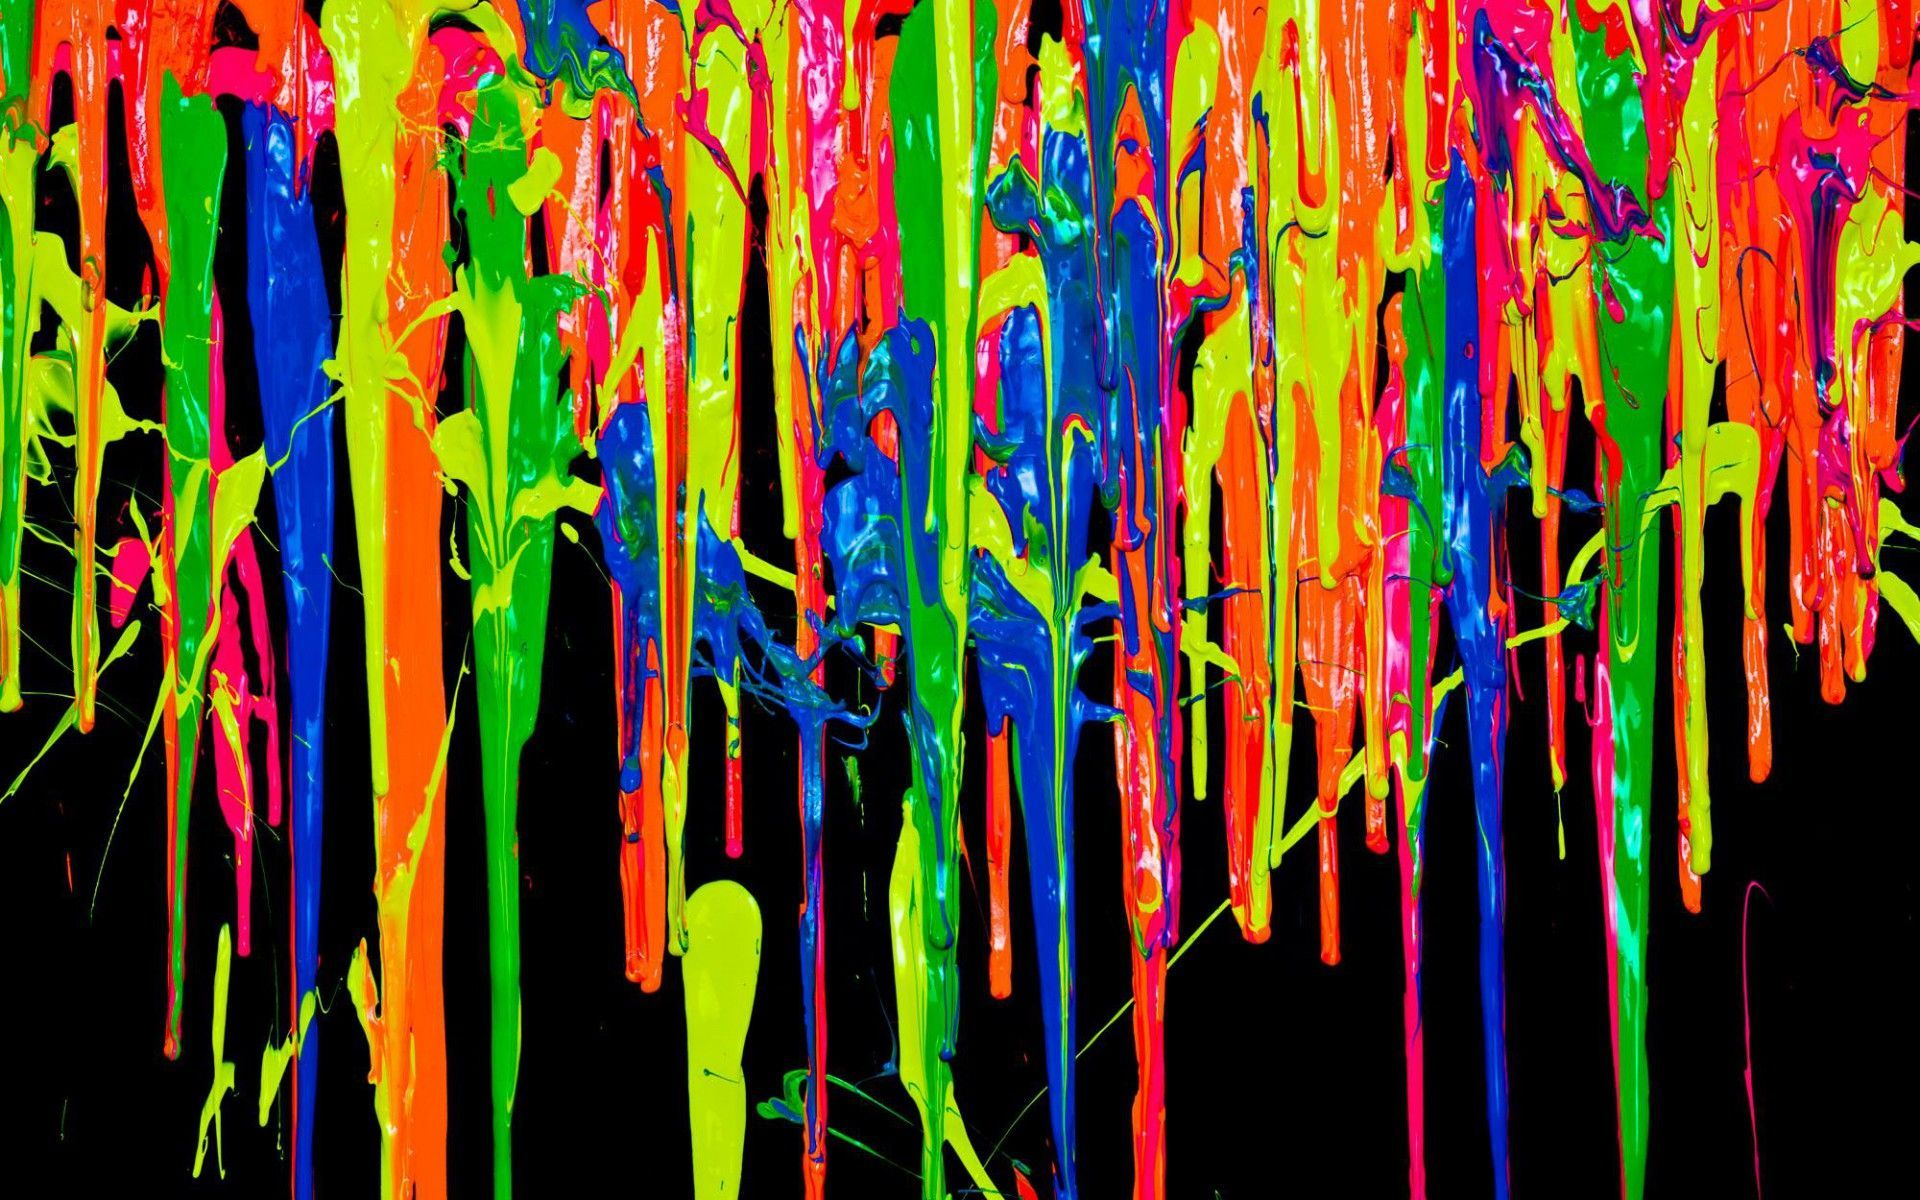 trippy colorful backgrounds - sf wallpaper